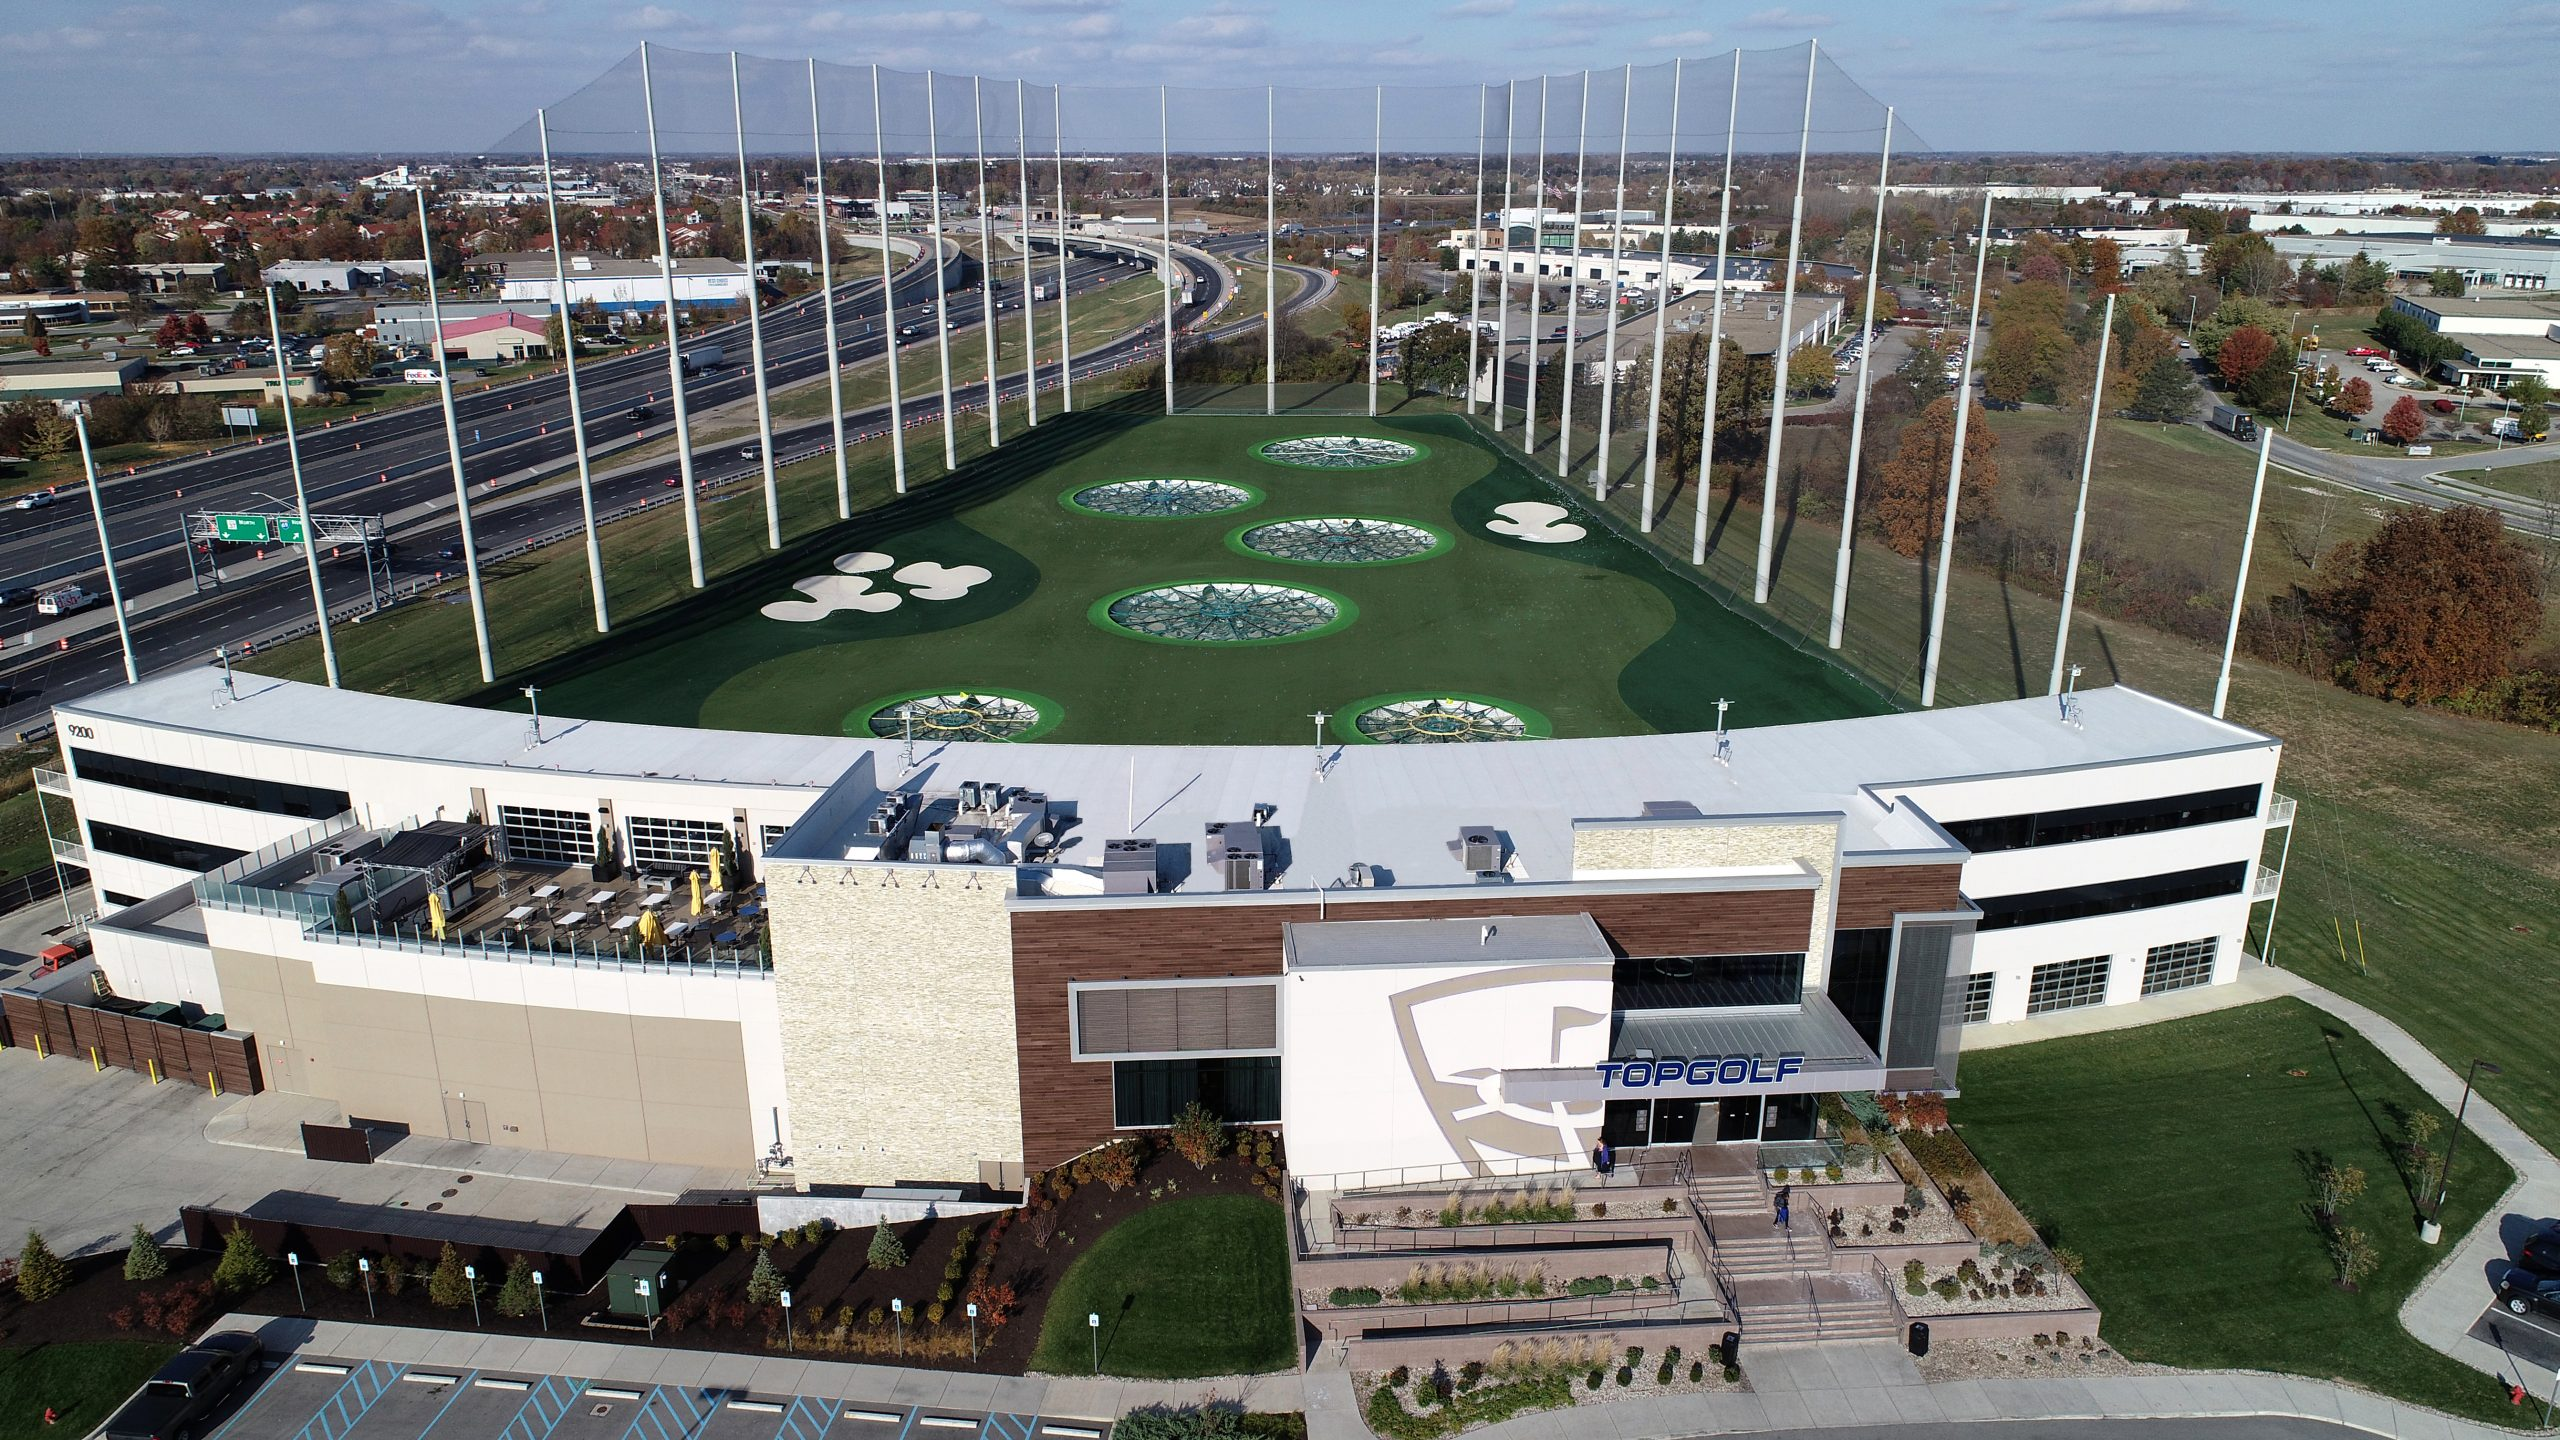 topgolf commercial roofing project by ce reeve roofing in indiana